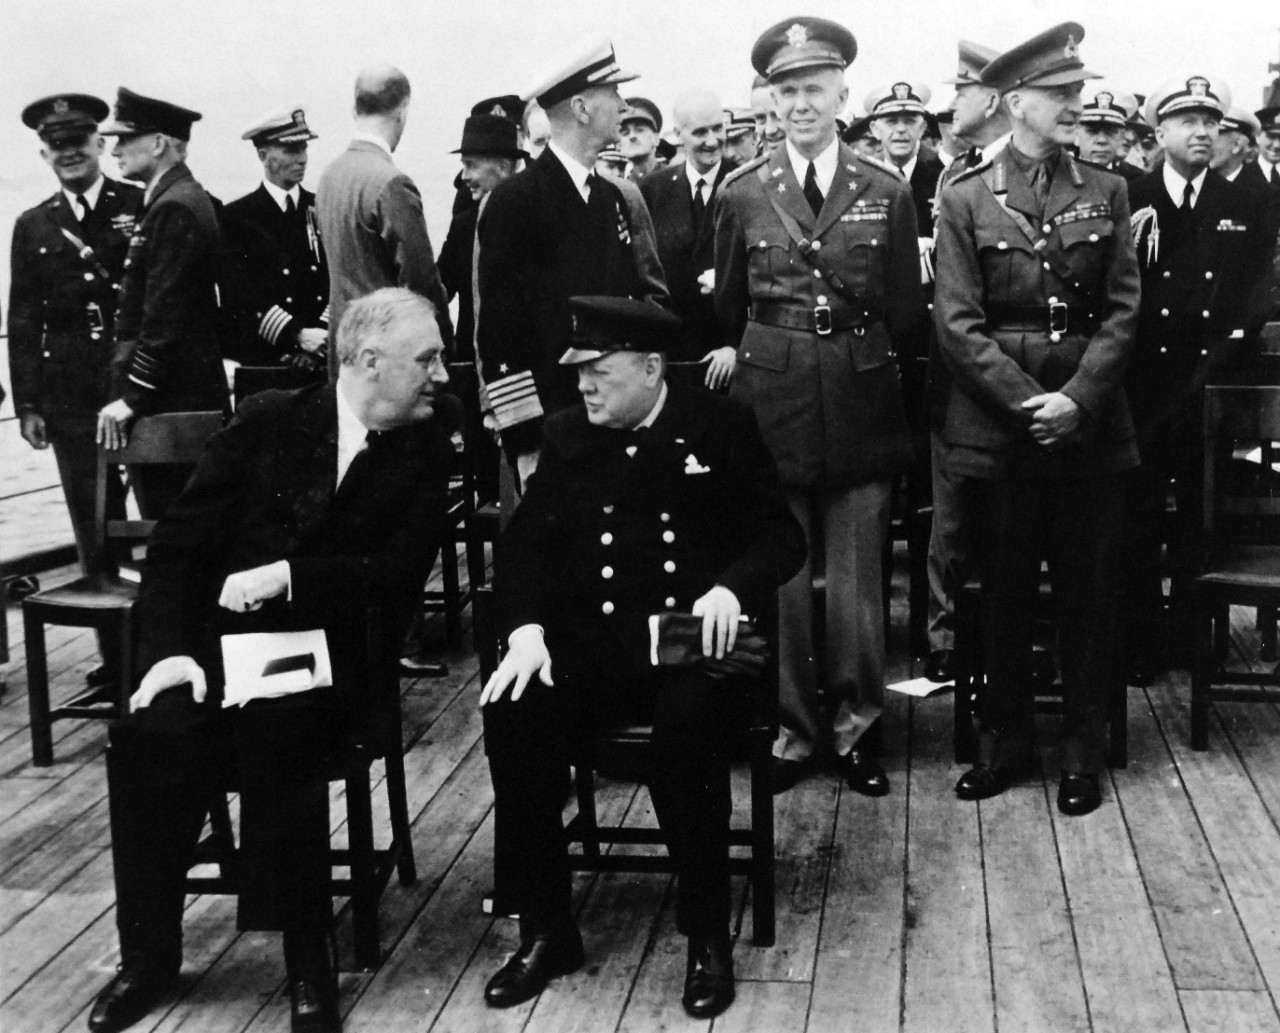 80-G-26863: Atlantic Charter, August 1941.  Informal group photograph including President Franklin D. Roosevelt and Prime Minister Winston S. Churchill on deck of HMS Prince of Wales following church services during the Atlantic Charter.  Photograph released August 1941.   Official U.S. Navy Photograph, now in the collections of the National Archives.  (2016/03/22).